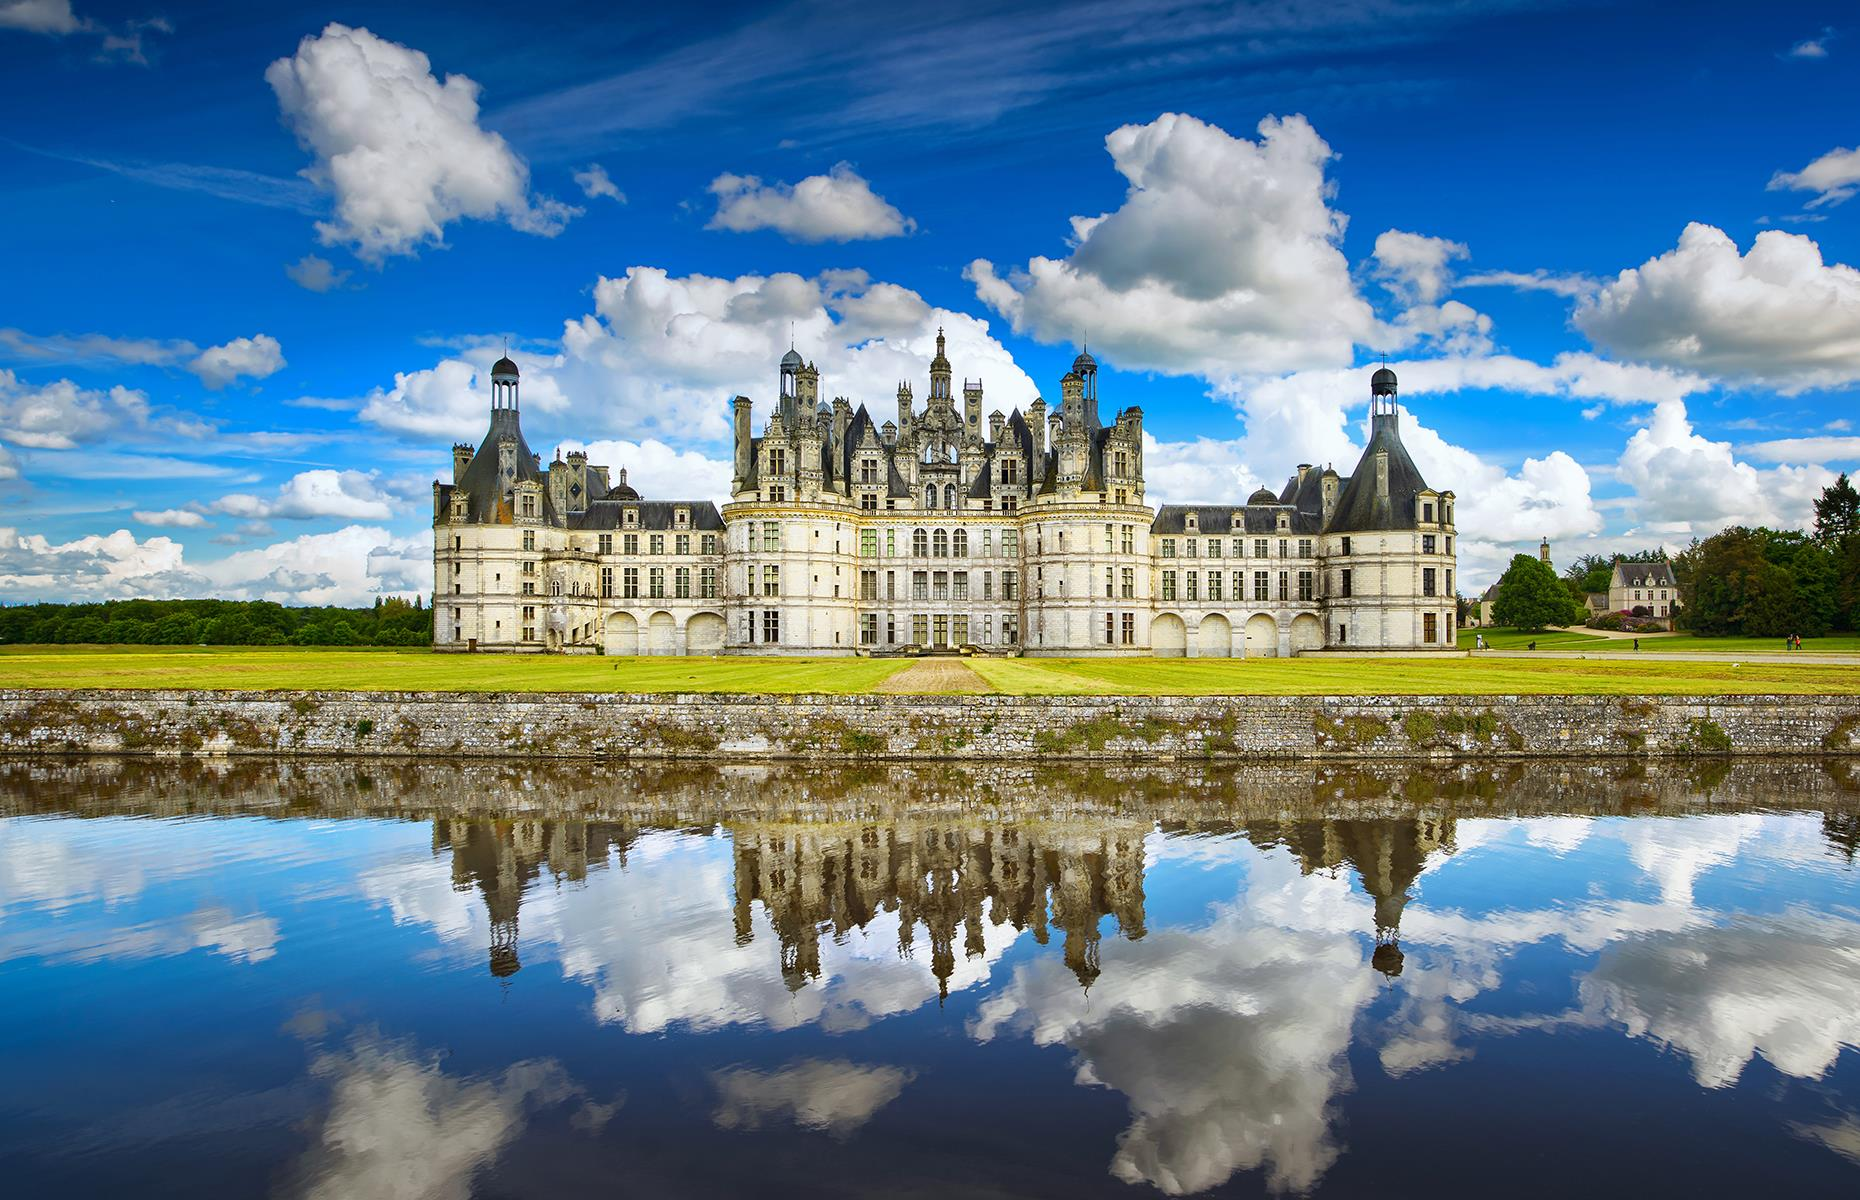 Slide 42 of 53: The enormous, breathtaking Château de Chambord, in France's Loire Valley, was completed in the 17th century and is a UNESCOWorld Heritage Site. Recognizable worldwide as an emblem of the French Renaissance, the châteauisn't just notable for its stunning architecture and lavish interiors, but also for its surrounding natural forest and French gardens.